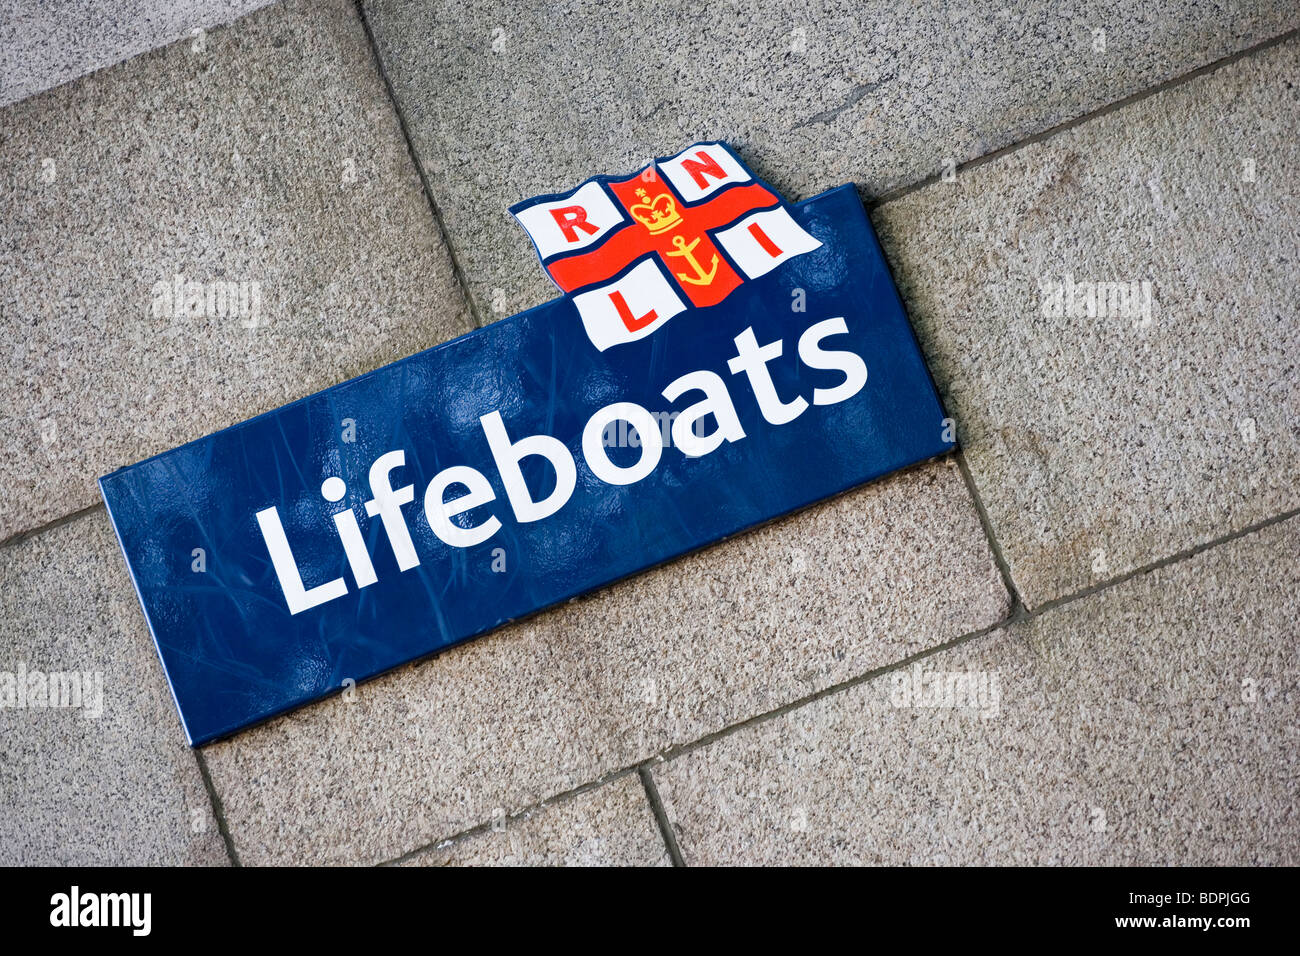 Royal National Lifeboat Institute sign - Stock Image